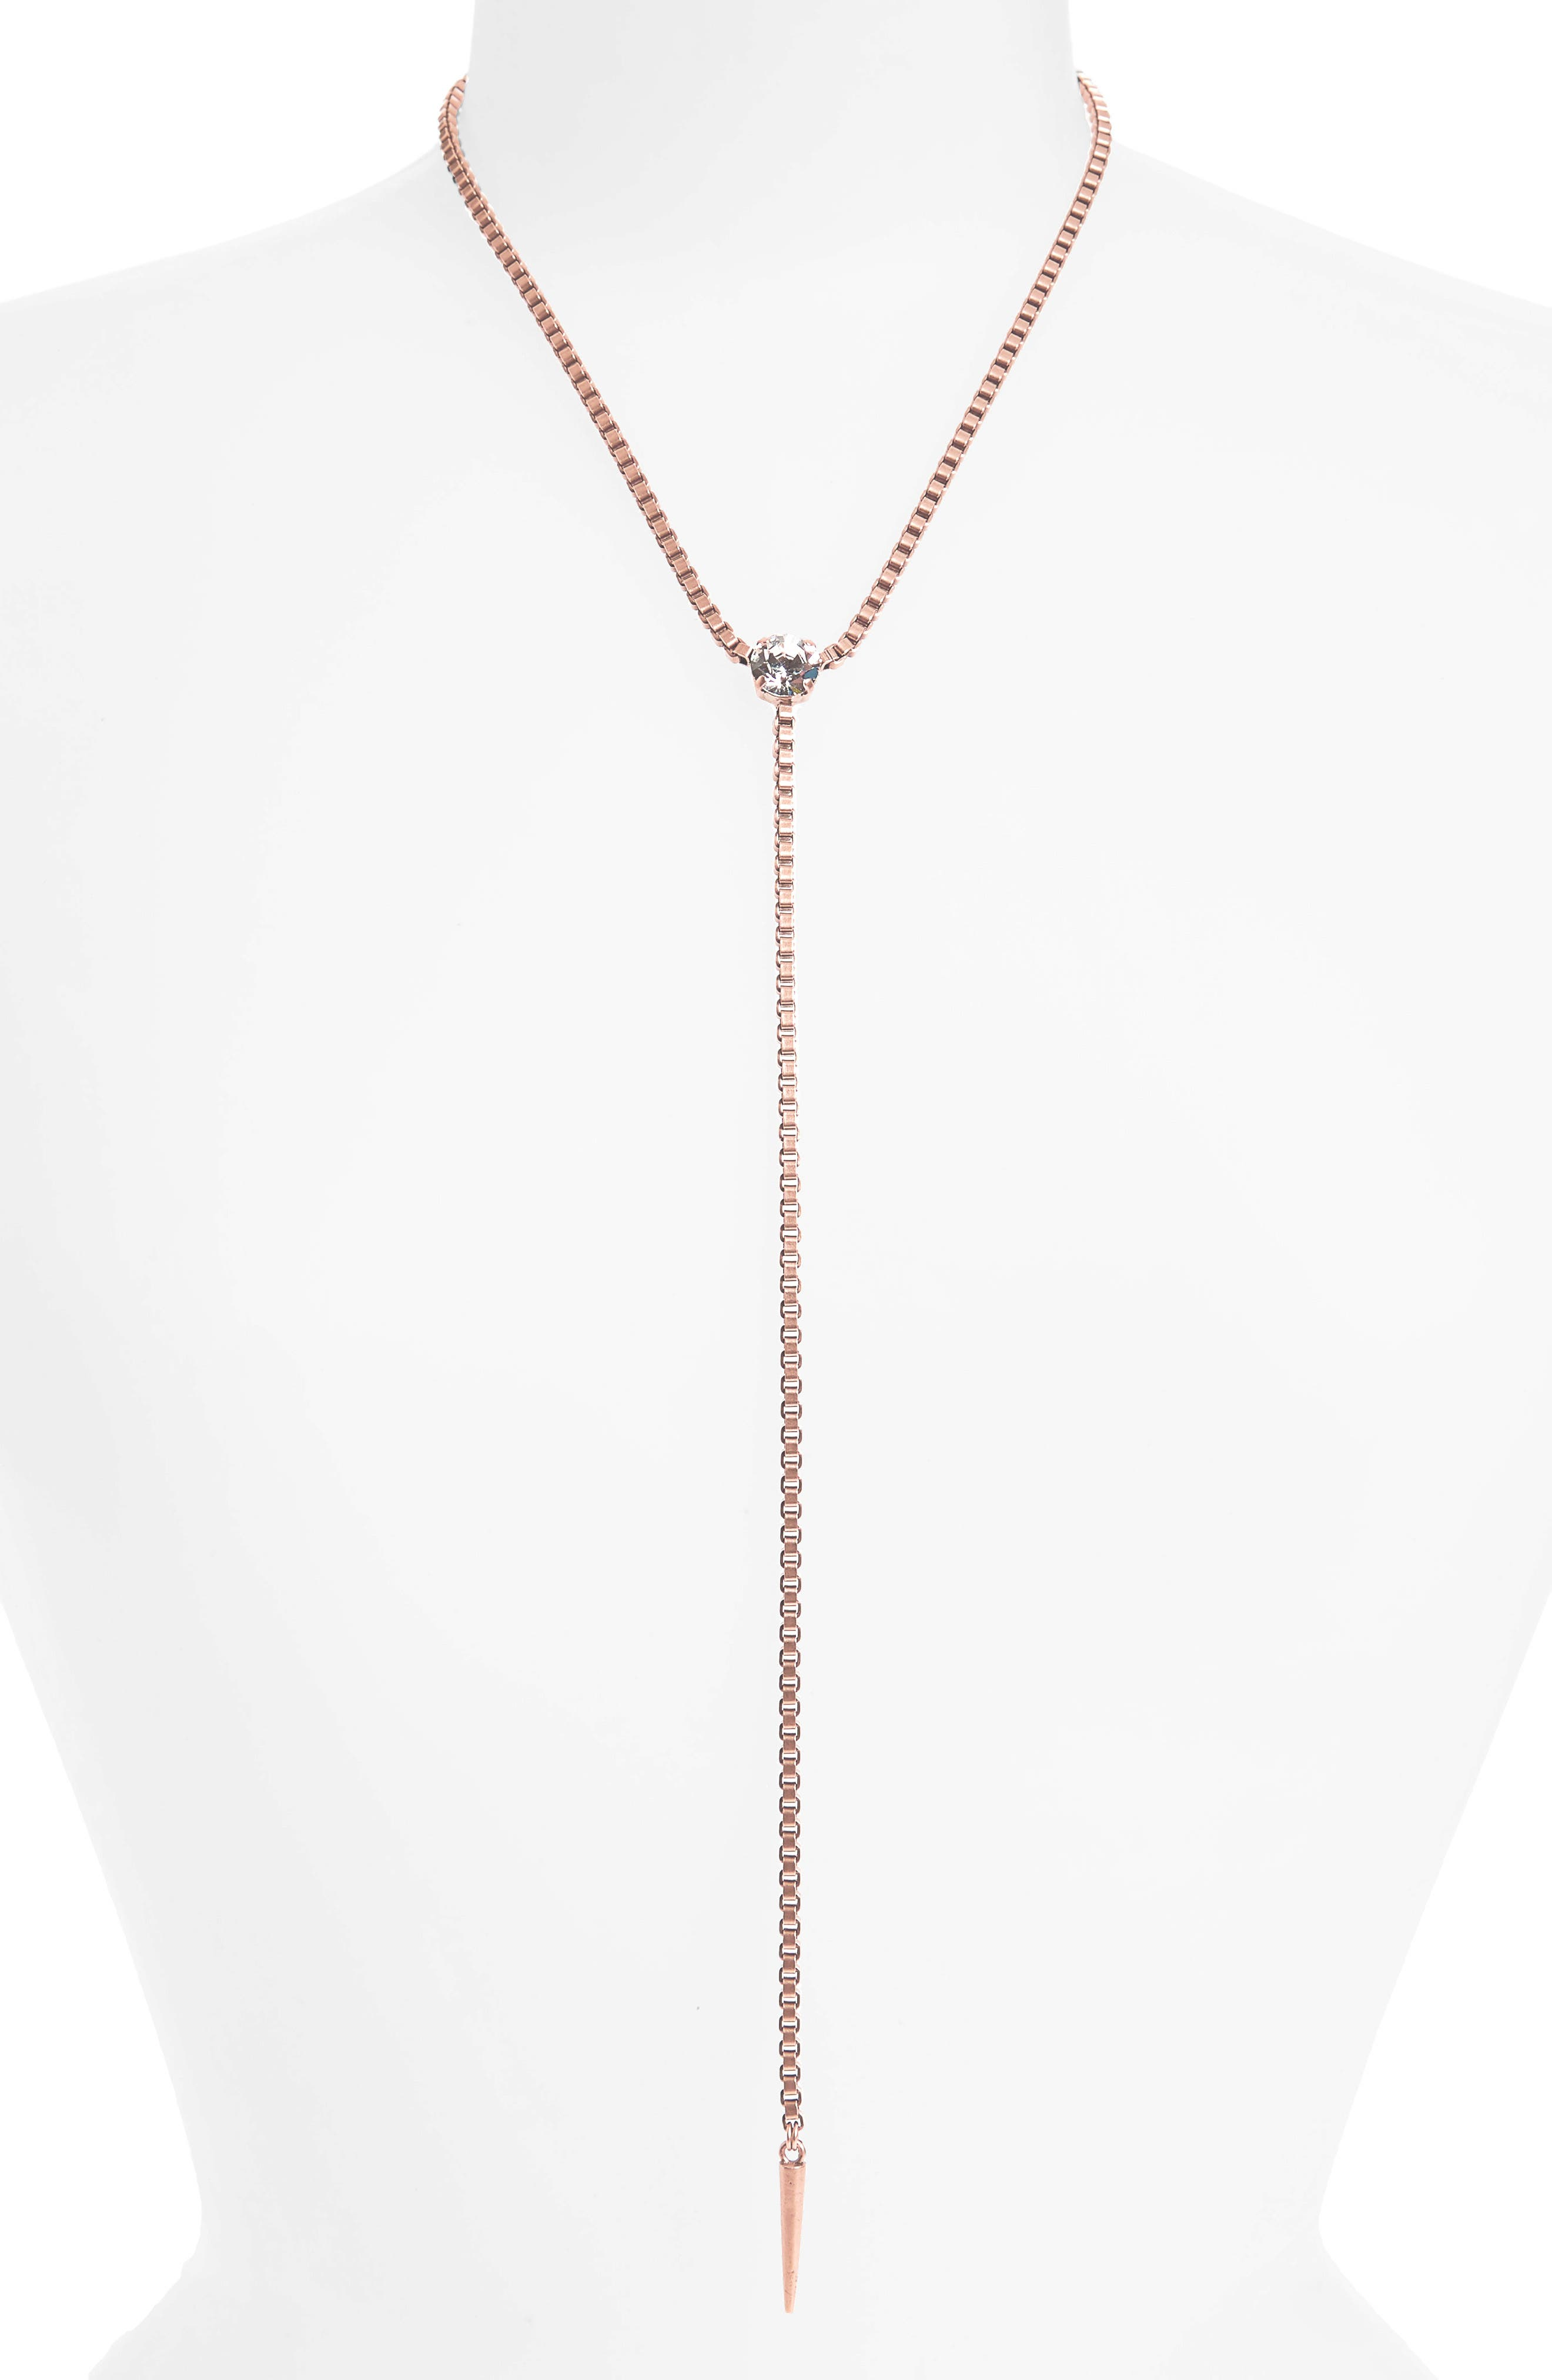 Loren Hope Mallory Y-Necklace